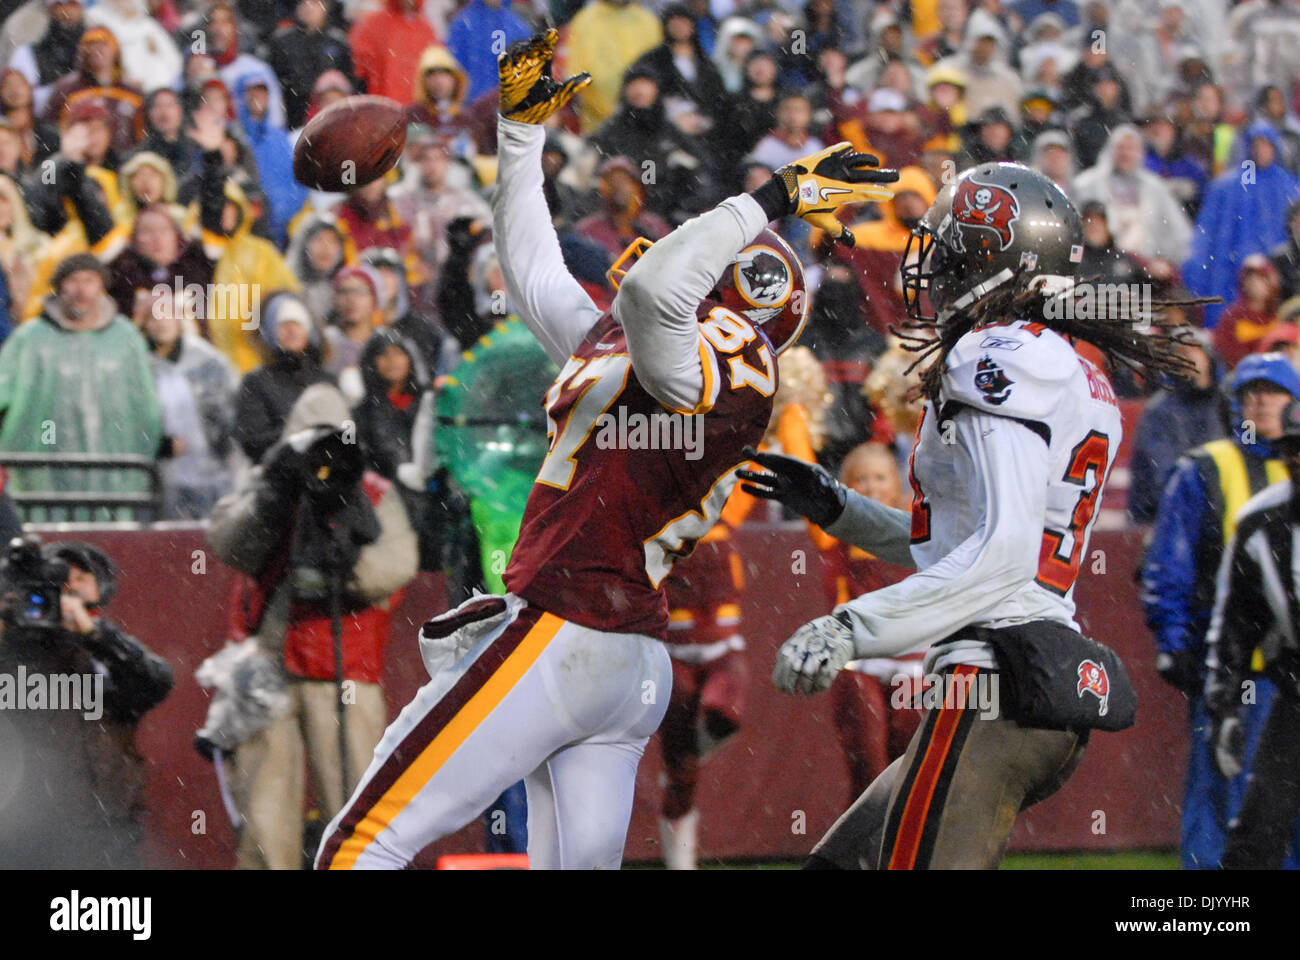 Dec. 12, 2010 - Landover, Maryland, United States of America - Roydell Williams (87) of the Washington Redskins overthrown with seconds left at games end, FedEx Field NFL game action, final score; Buccaneers 17 Redskins 16 (Credit Image: © Roland Pintilie/Southcreek Global/ZUMAPRESS.com) - Stock Image